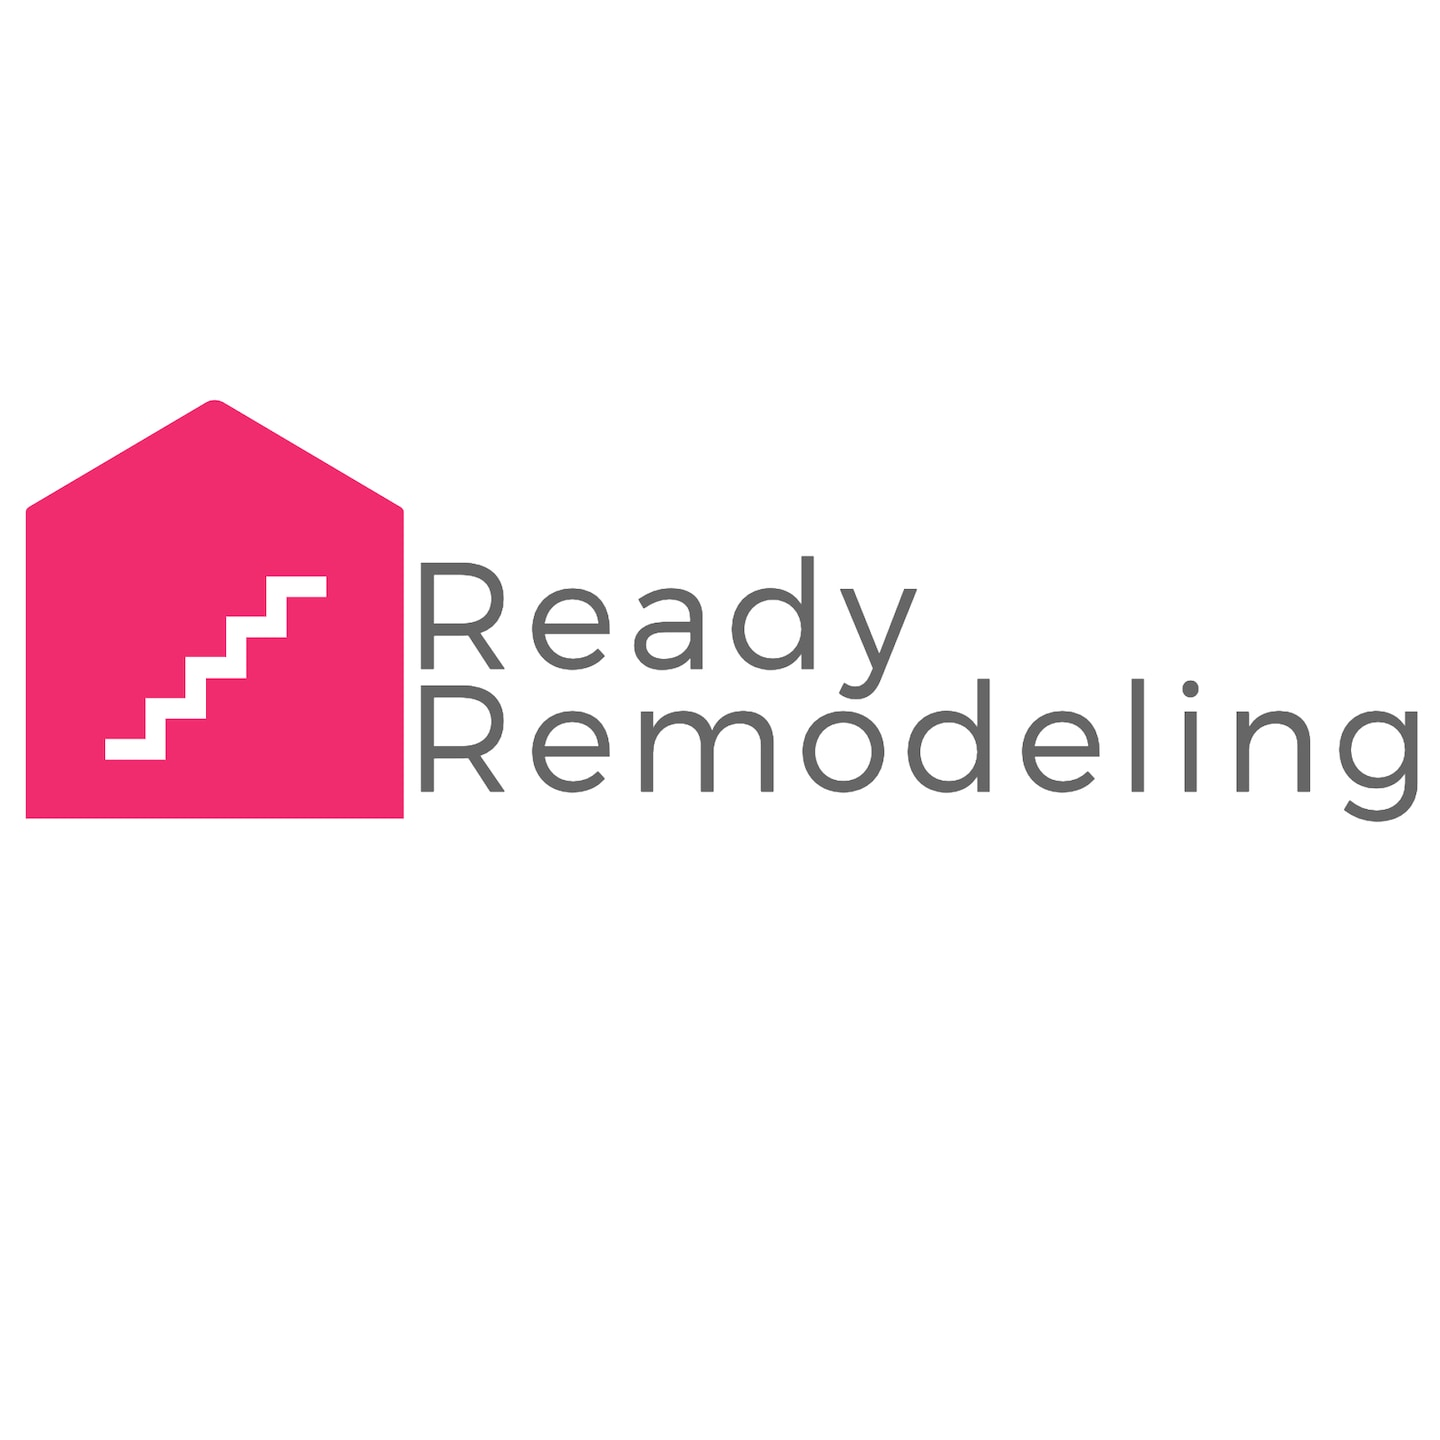 Readyremodeling LLC